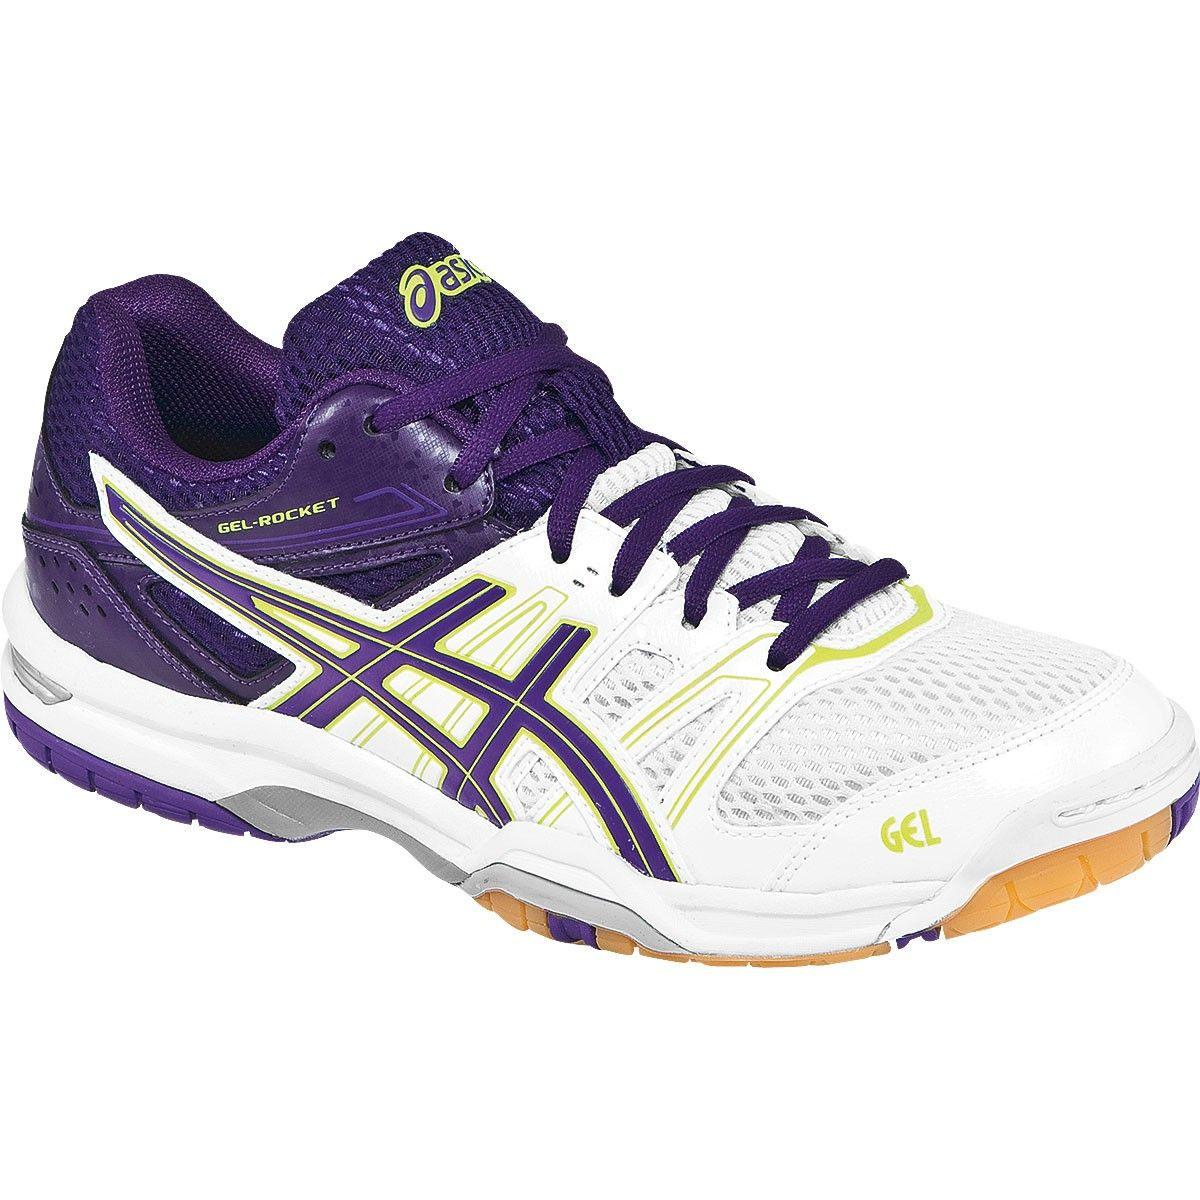 Asics Gel Rocket 7 Women S Volleyball Shoes